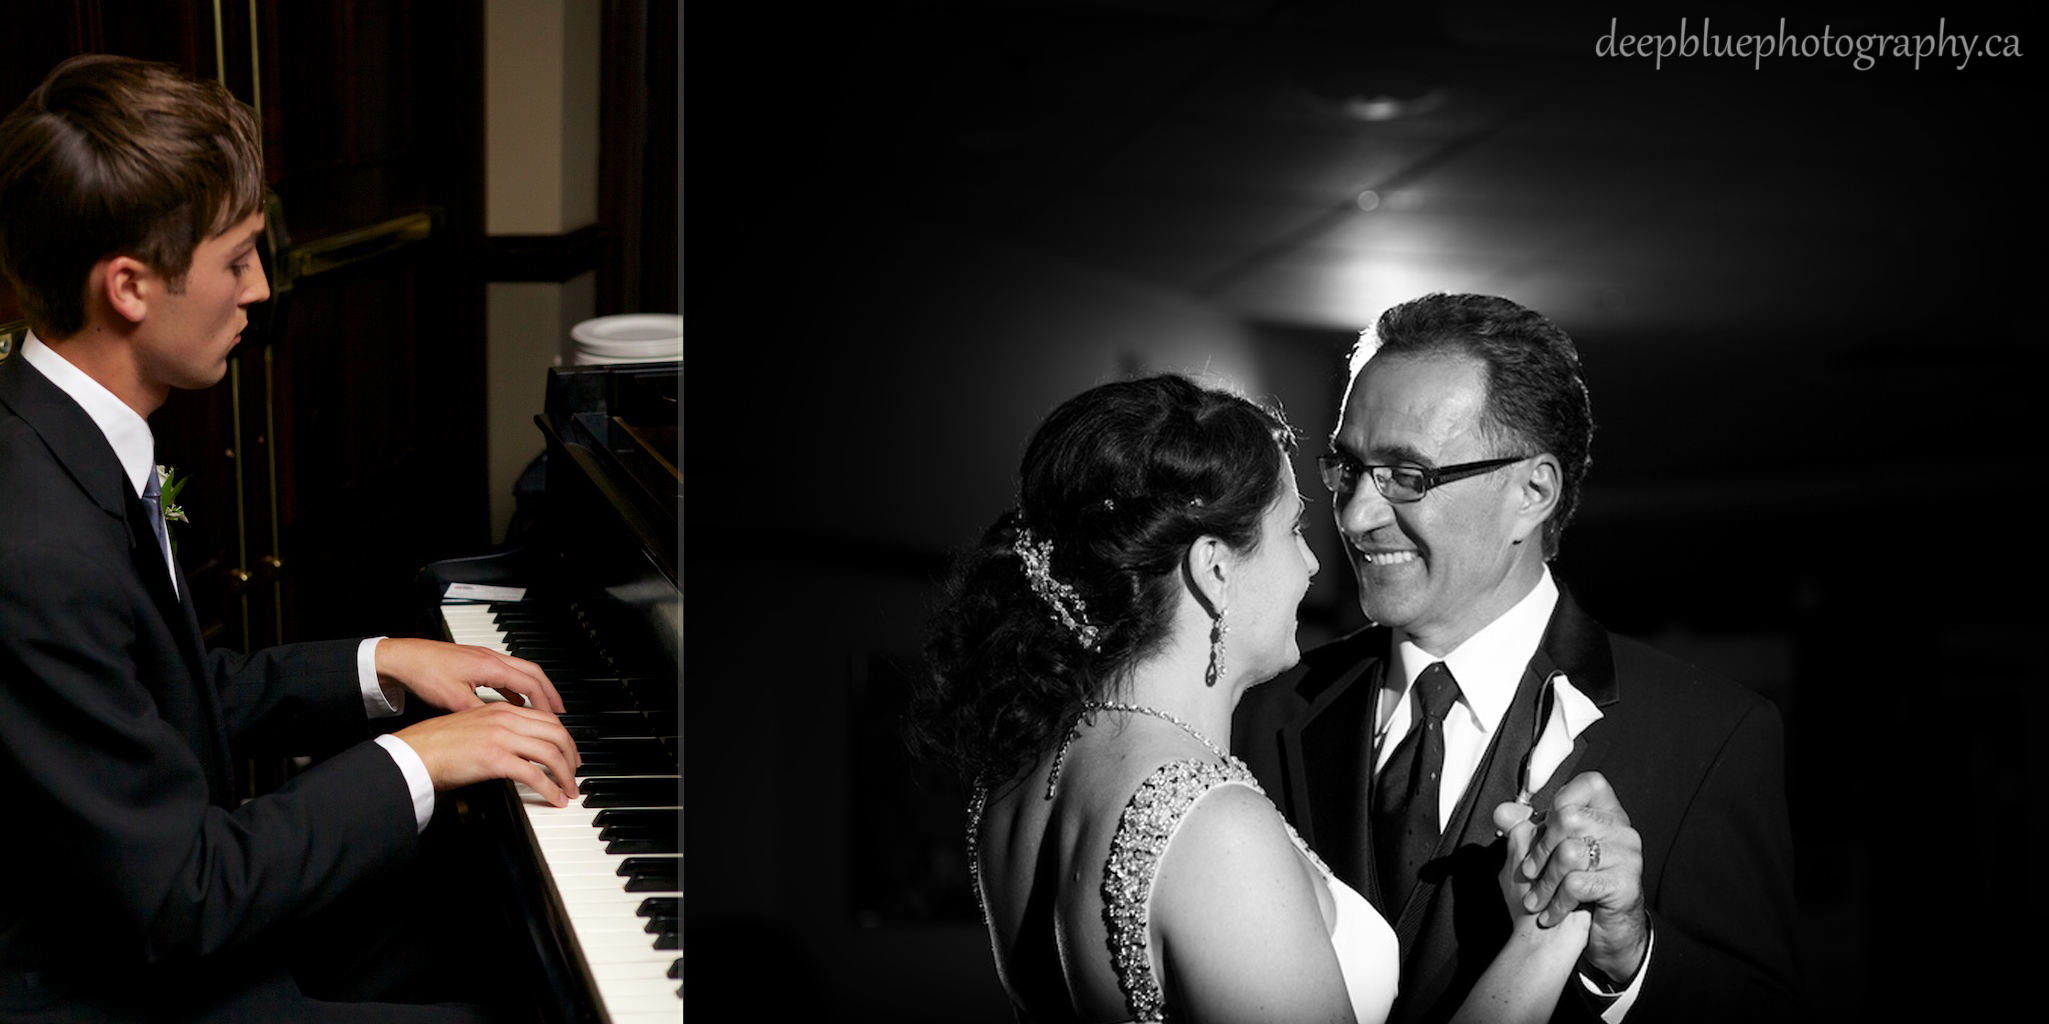 Photo of the Bride and Groom Sharing Their First Dance At Their Edmonton Golf And Country Club Wedding